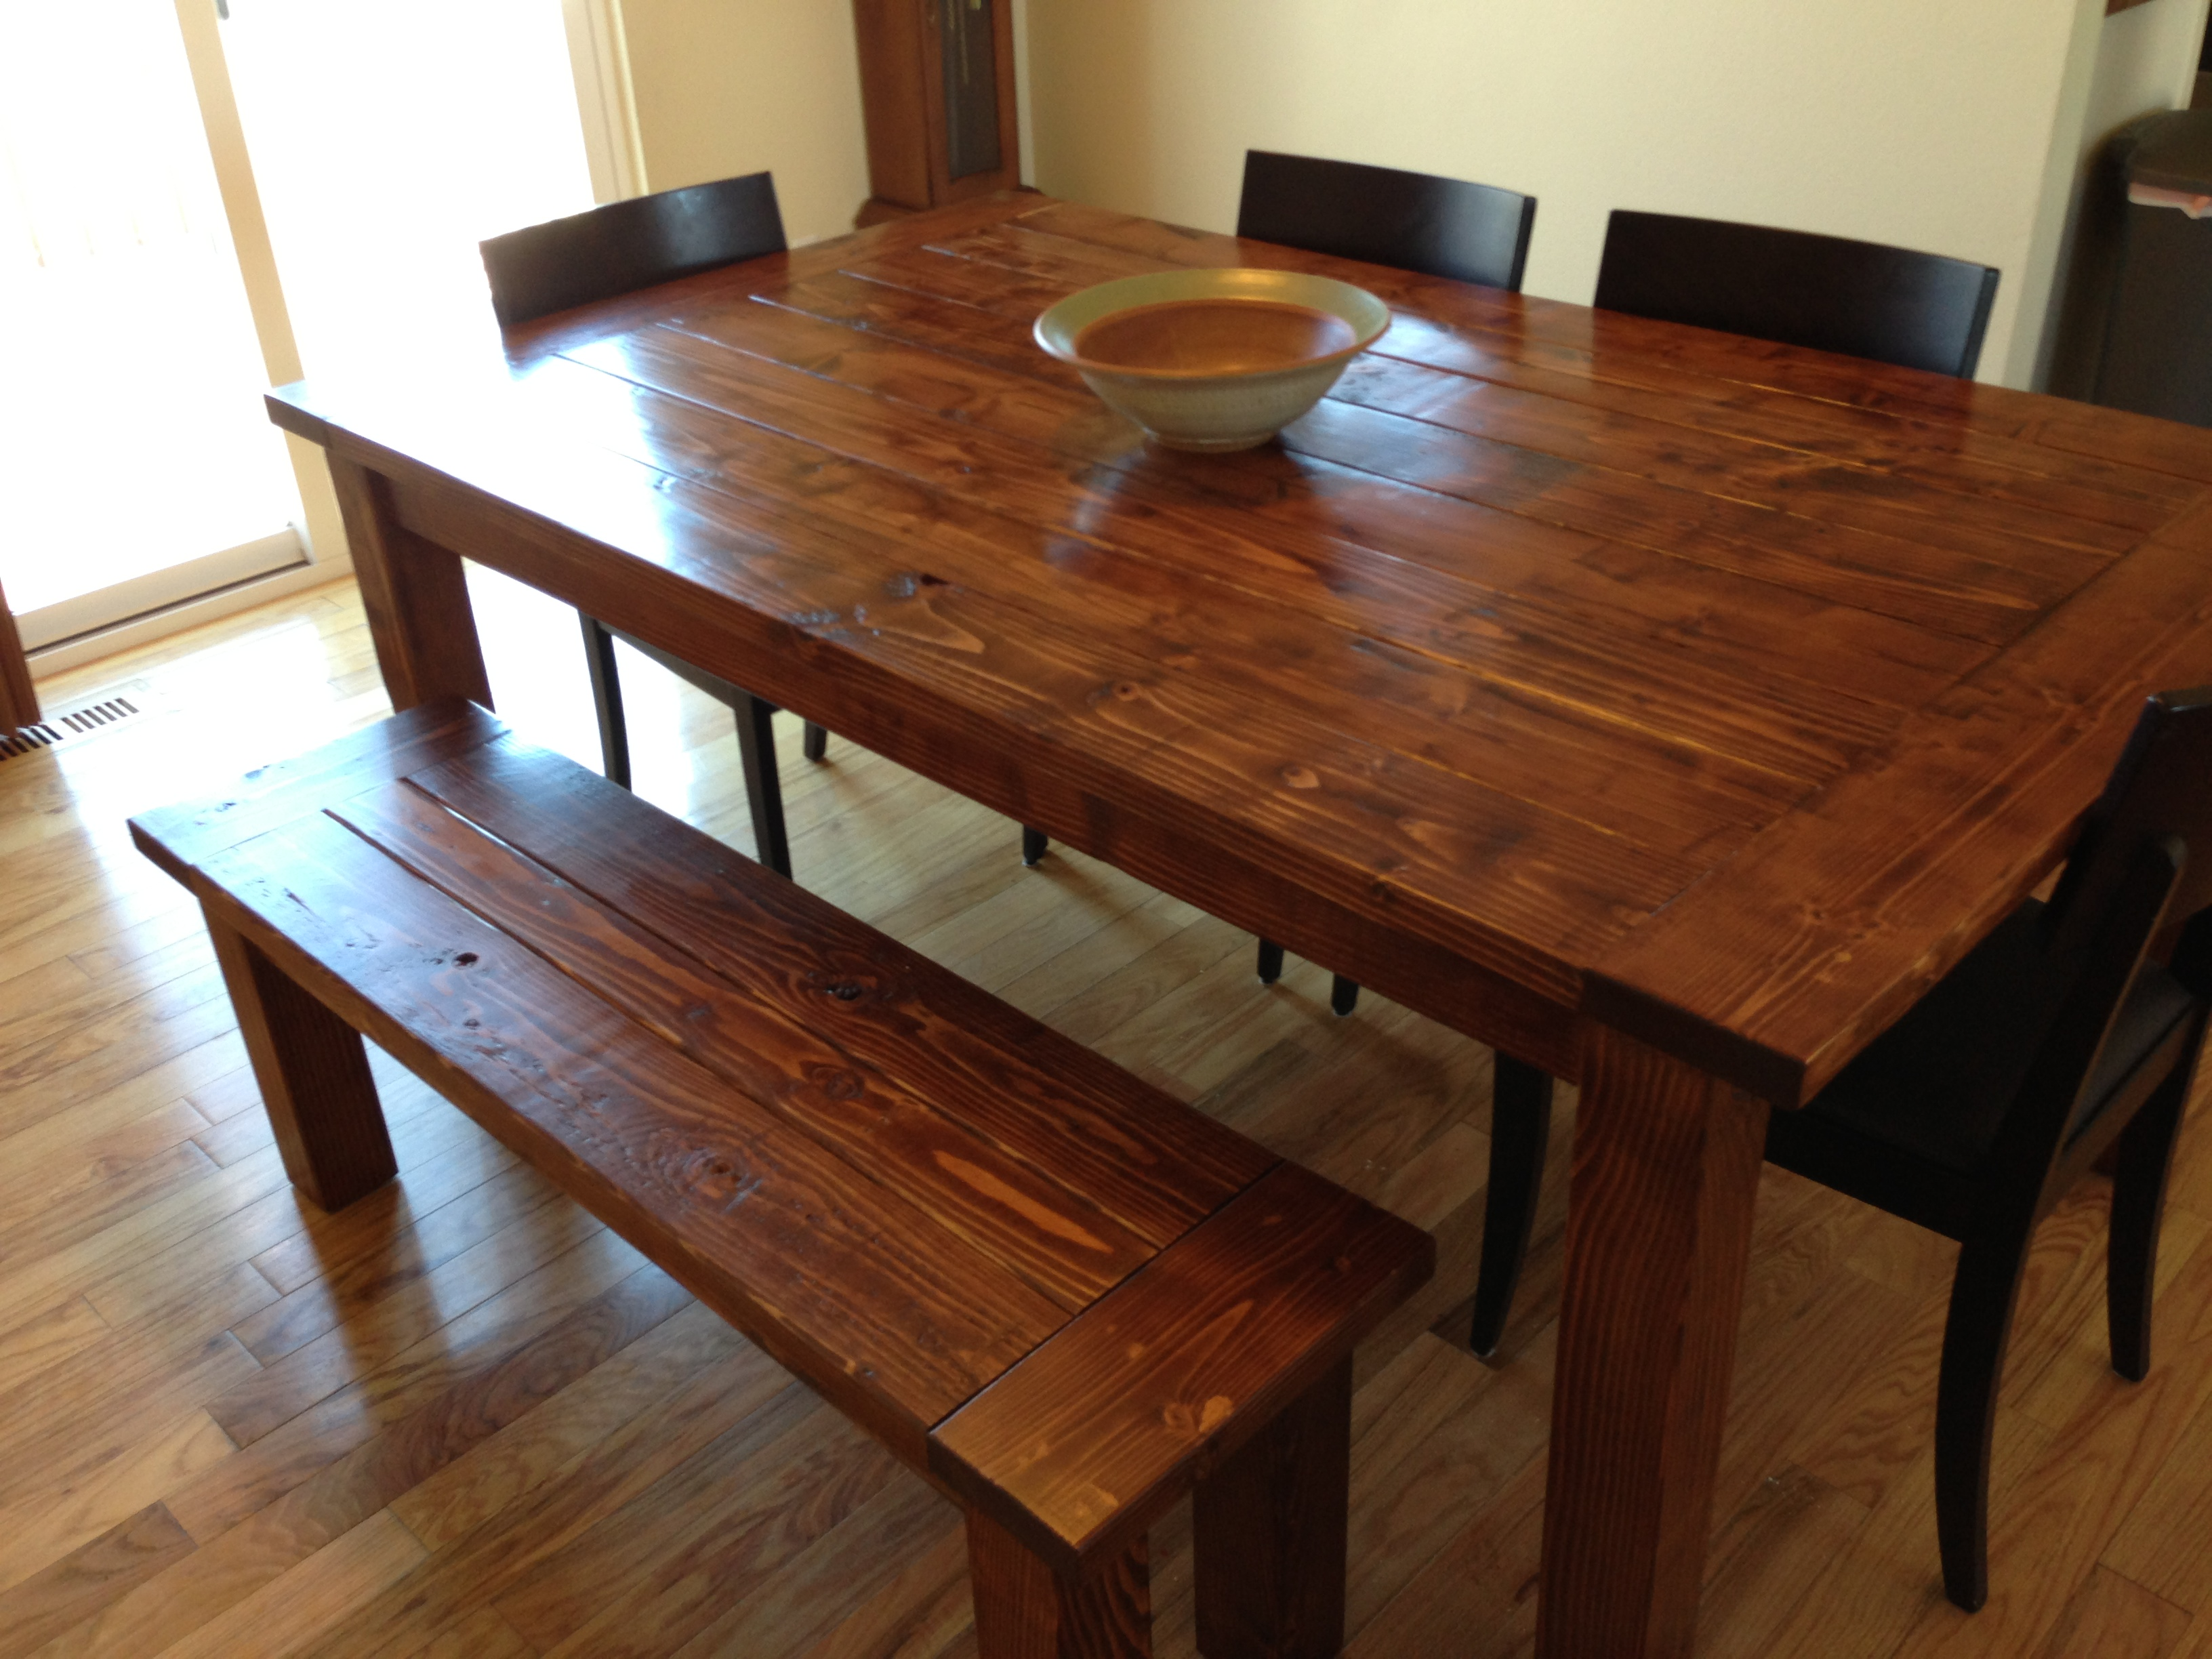 Ana White Modified Farmhouse Table Diy Projects